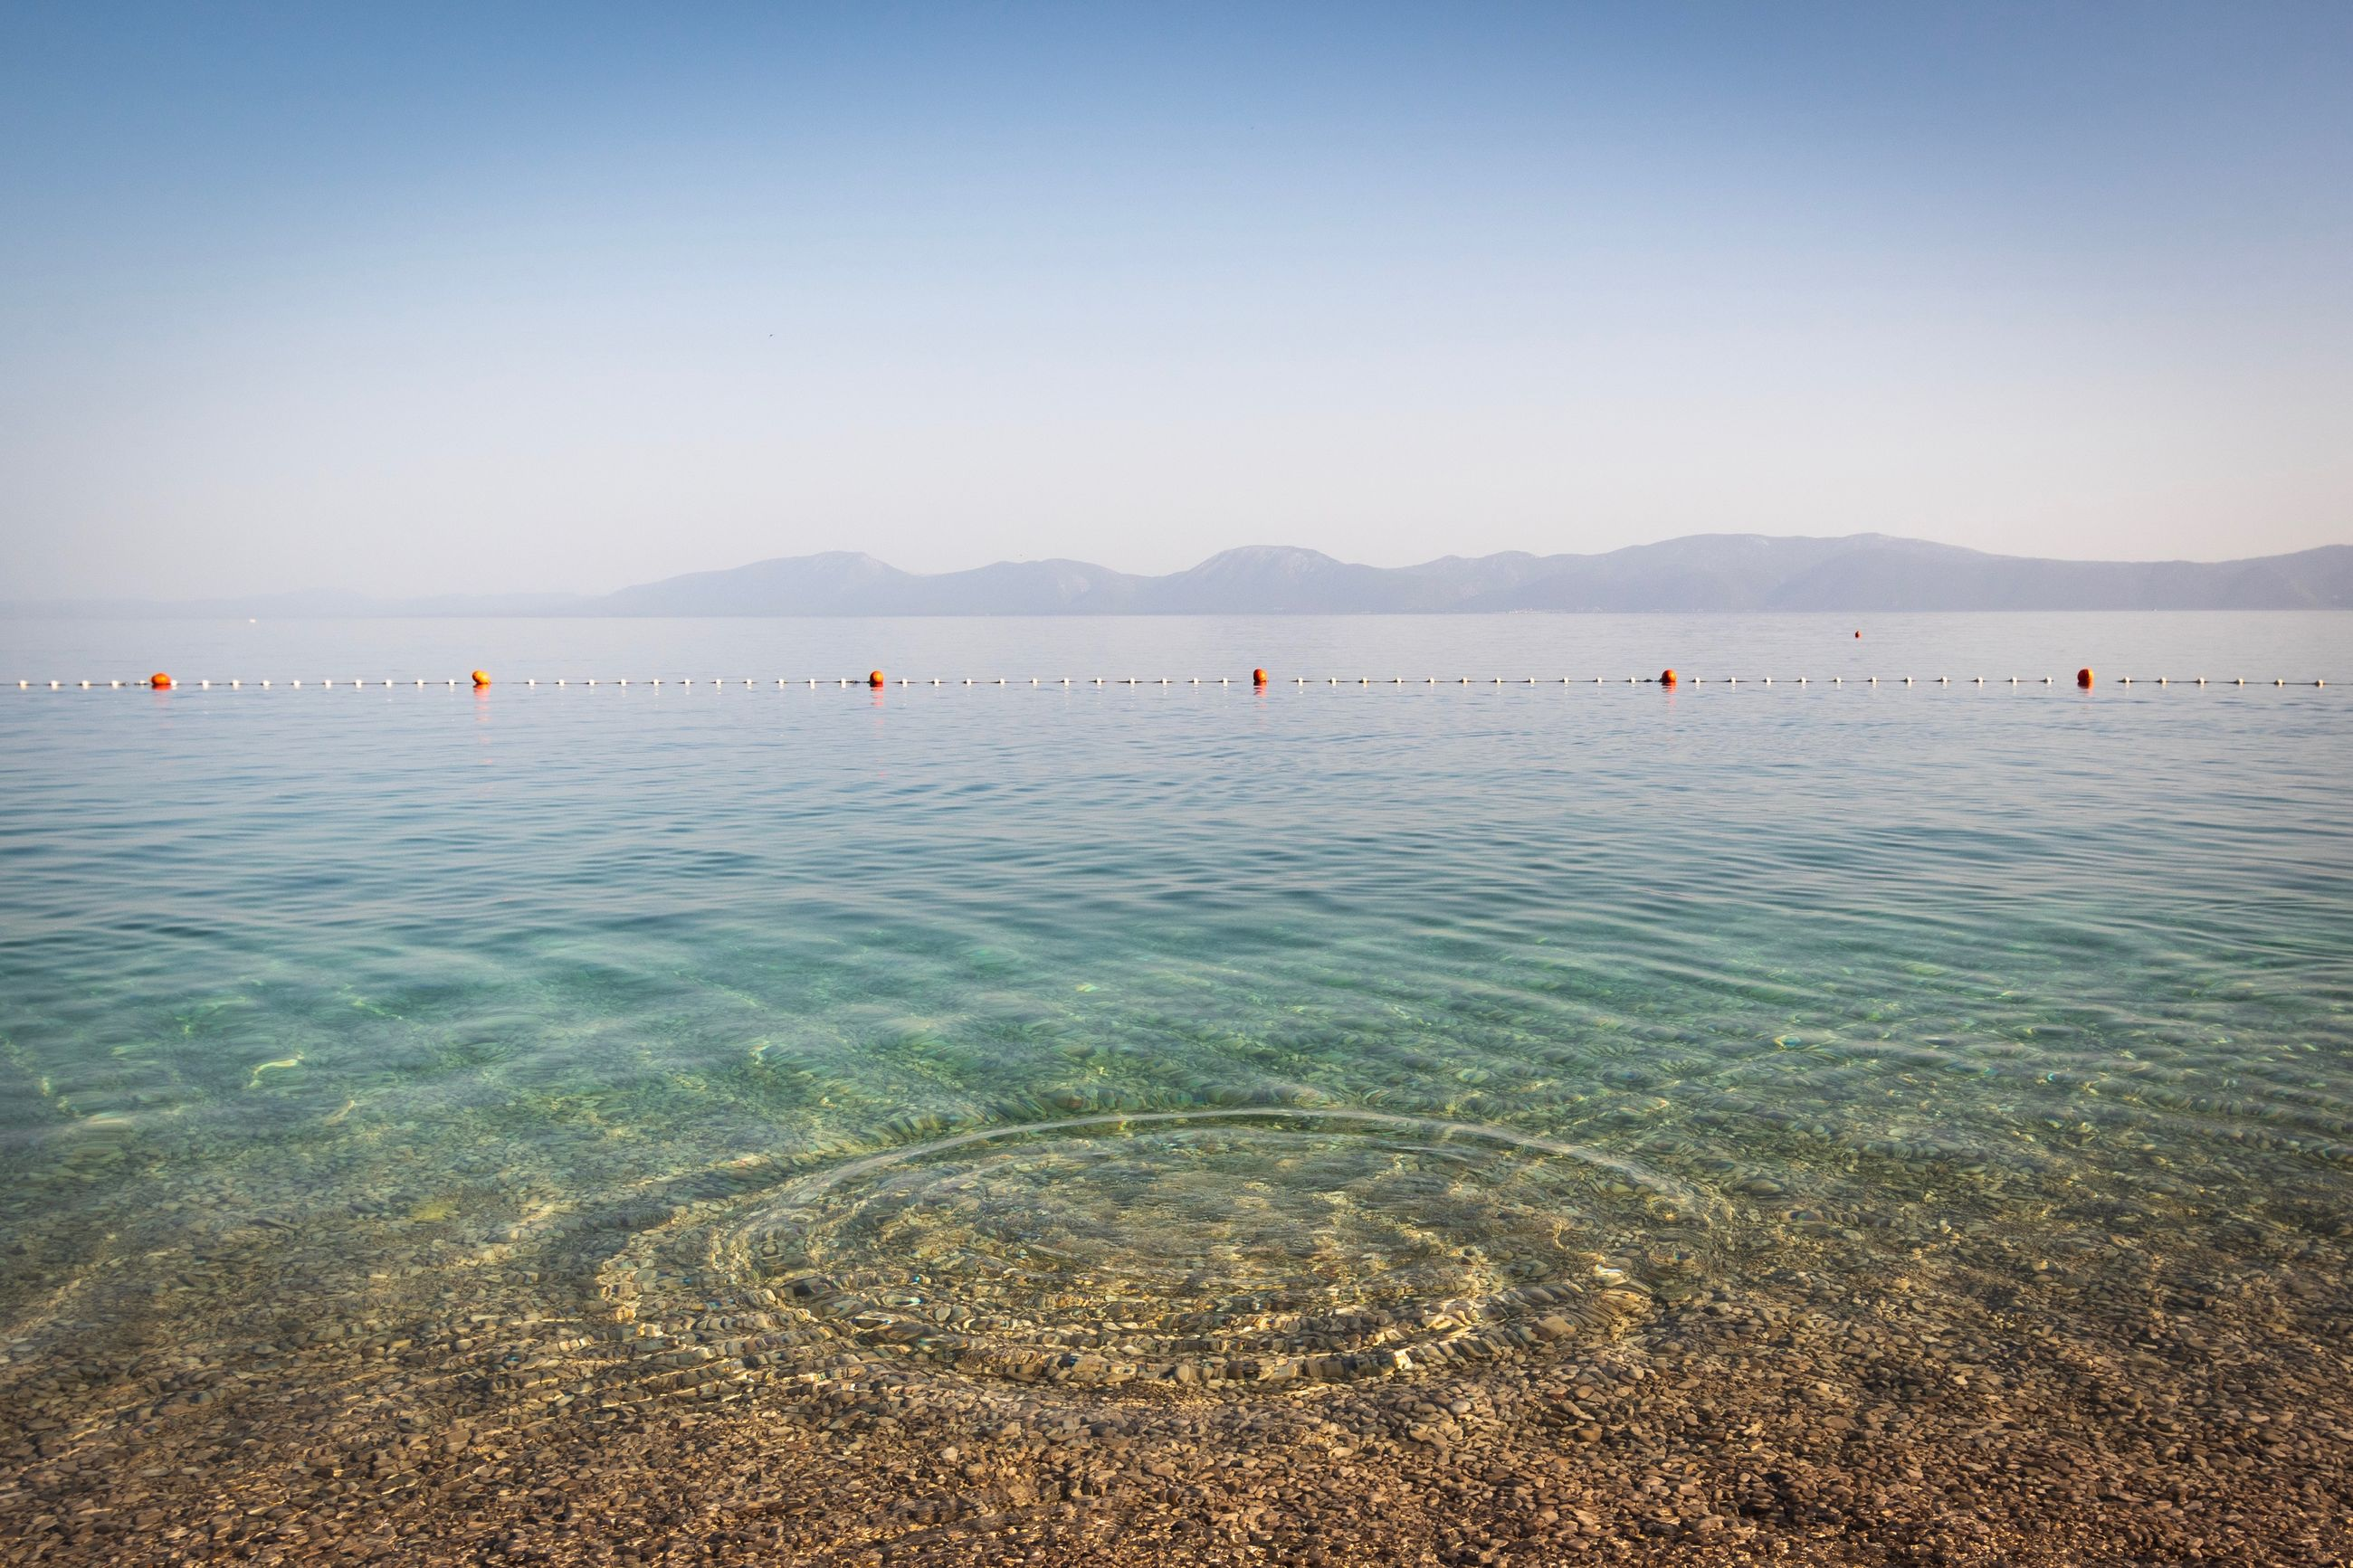 water, scenics - nature, beauty in nature, sky, sea, tranquil scene, tranquility, nature, waterfront, mountain, clear sky, idyllic, blue, day, copy space, land, beach, non-urban scene, no people, outdoors, shallow